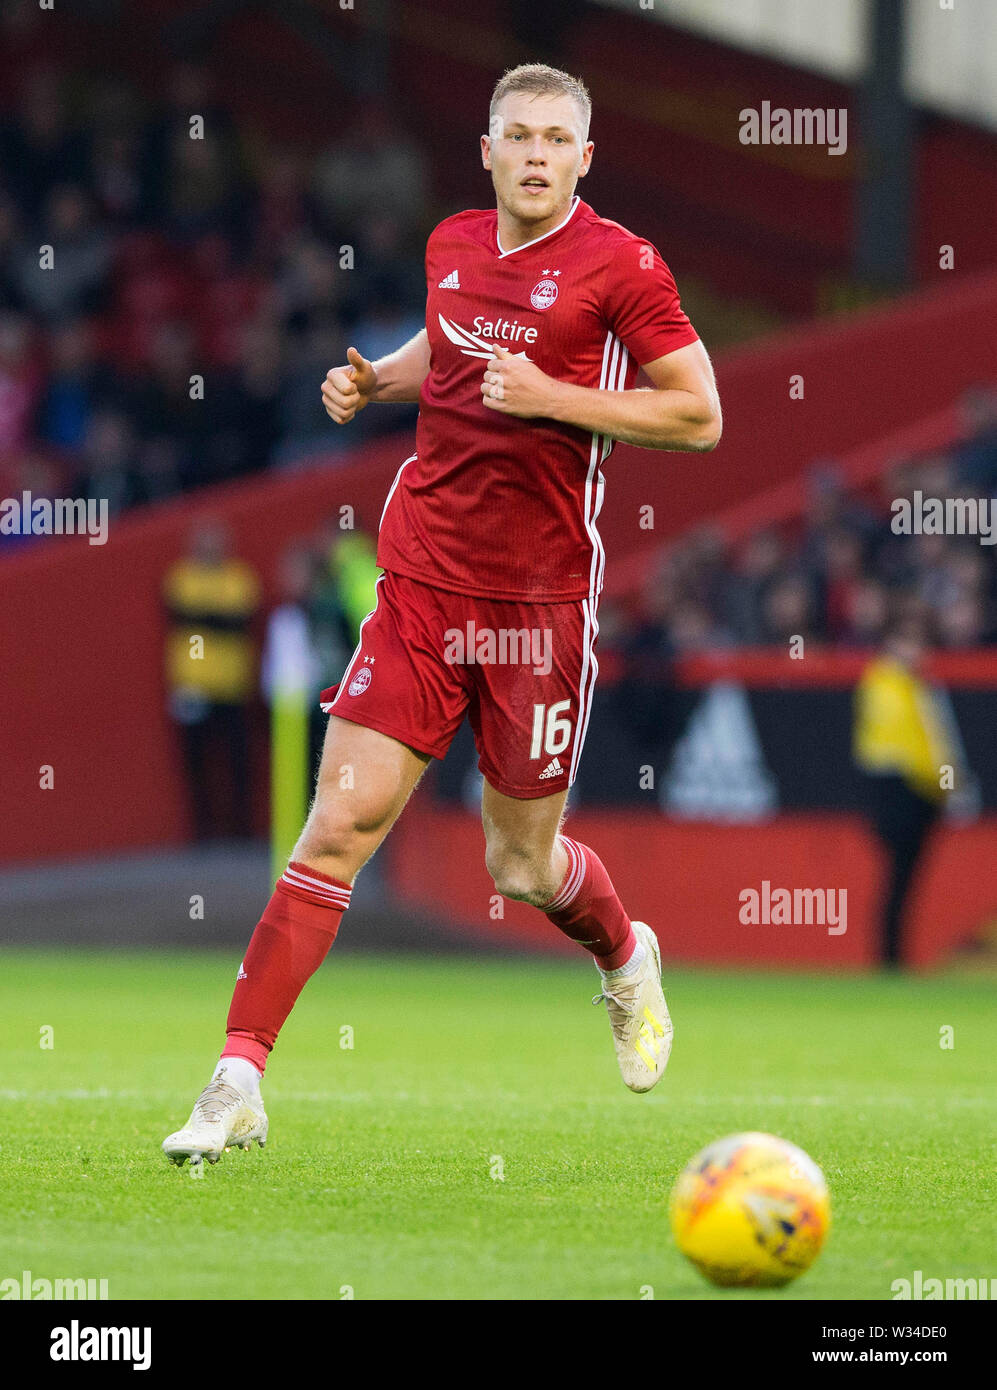 Aberdeen's Sam Cosgrove during the Europa League, Qualifying First Round match at Pittodrie Stadium, Aberdeen. - Stock Image